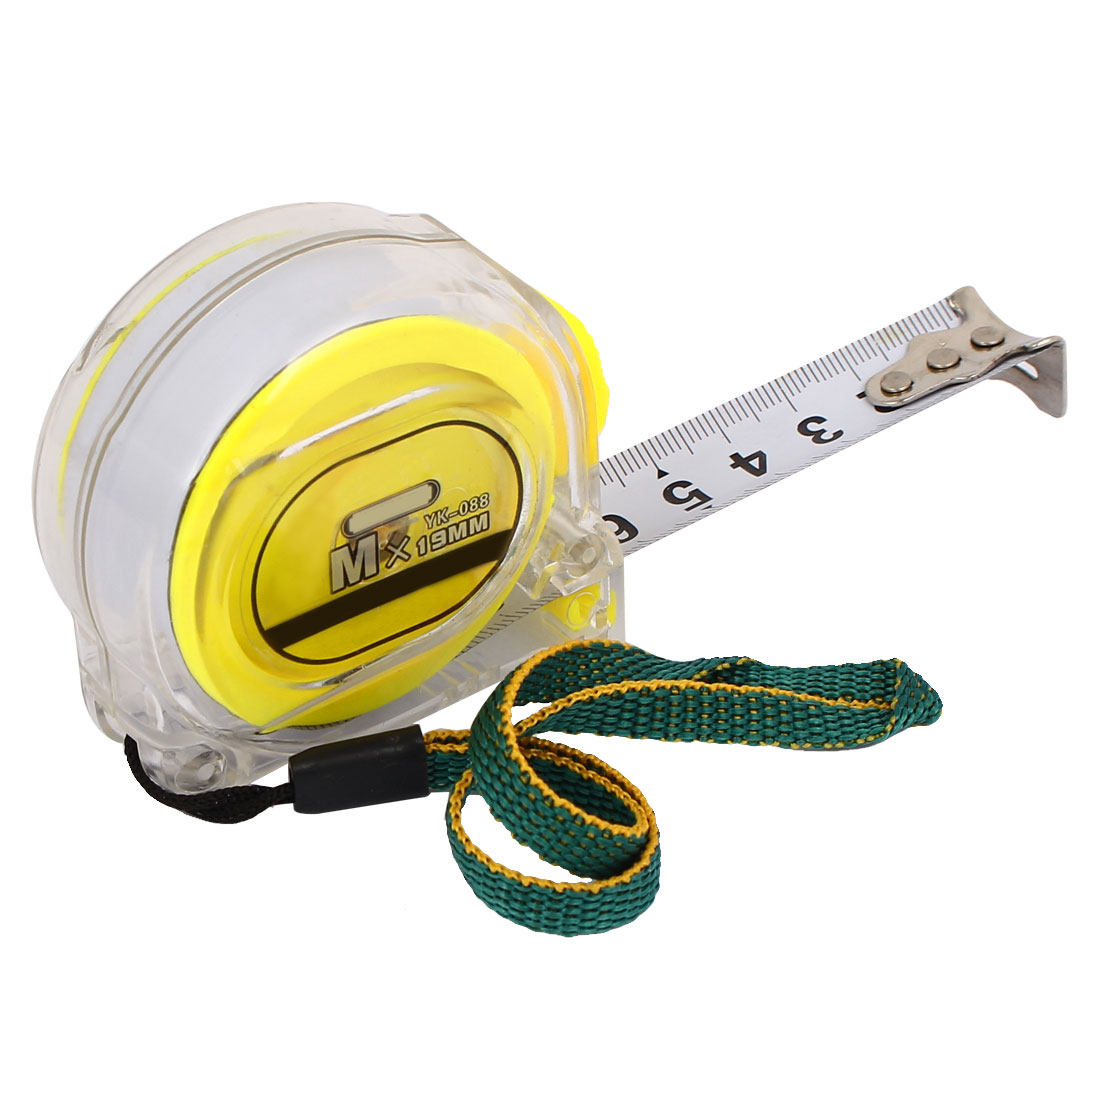 3 Meter Plastic Case Hand Strap Button Lock Measuring Tape Yellow